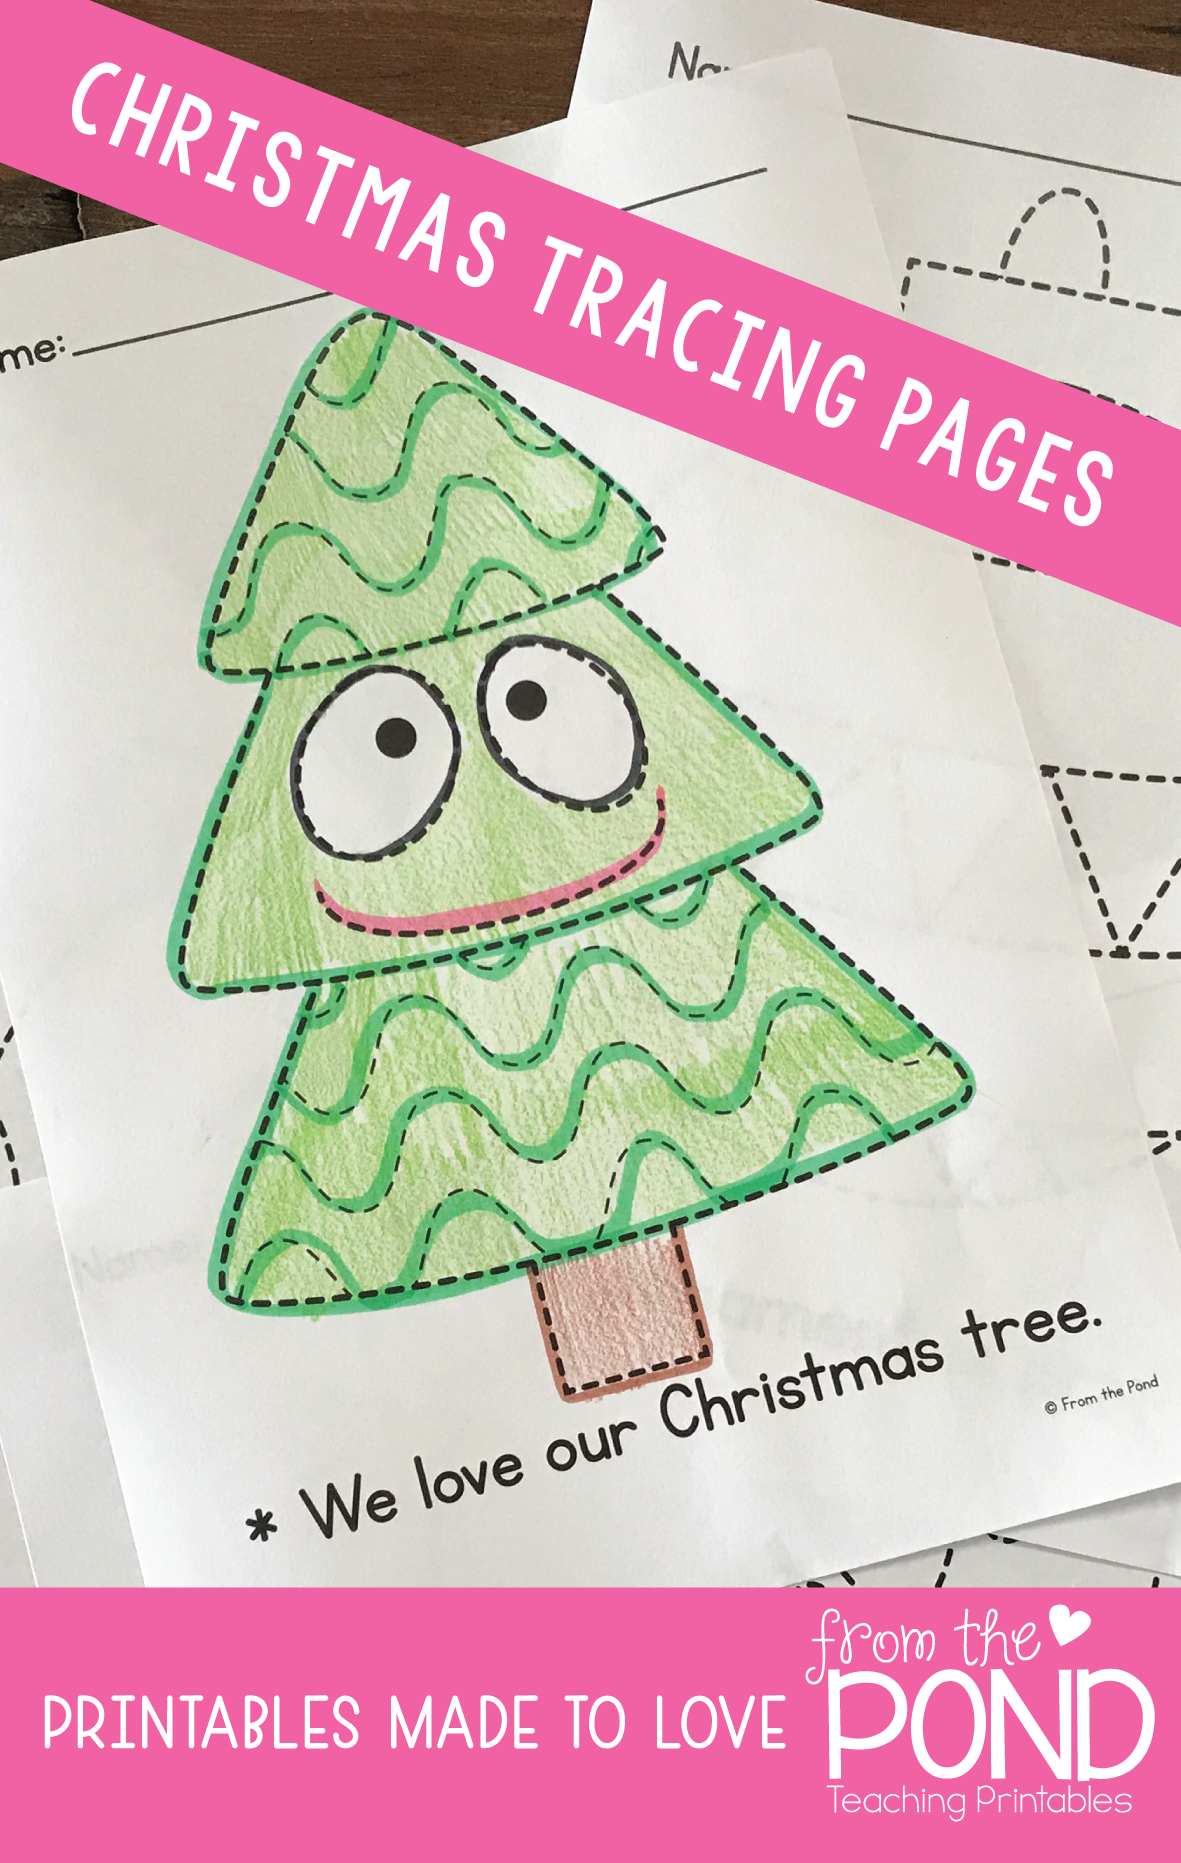 Christmas Tracing Pages Fine Motor Prewriting With